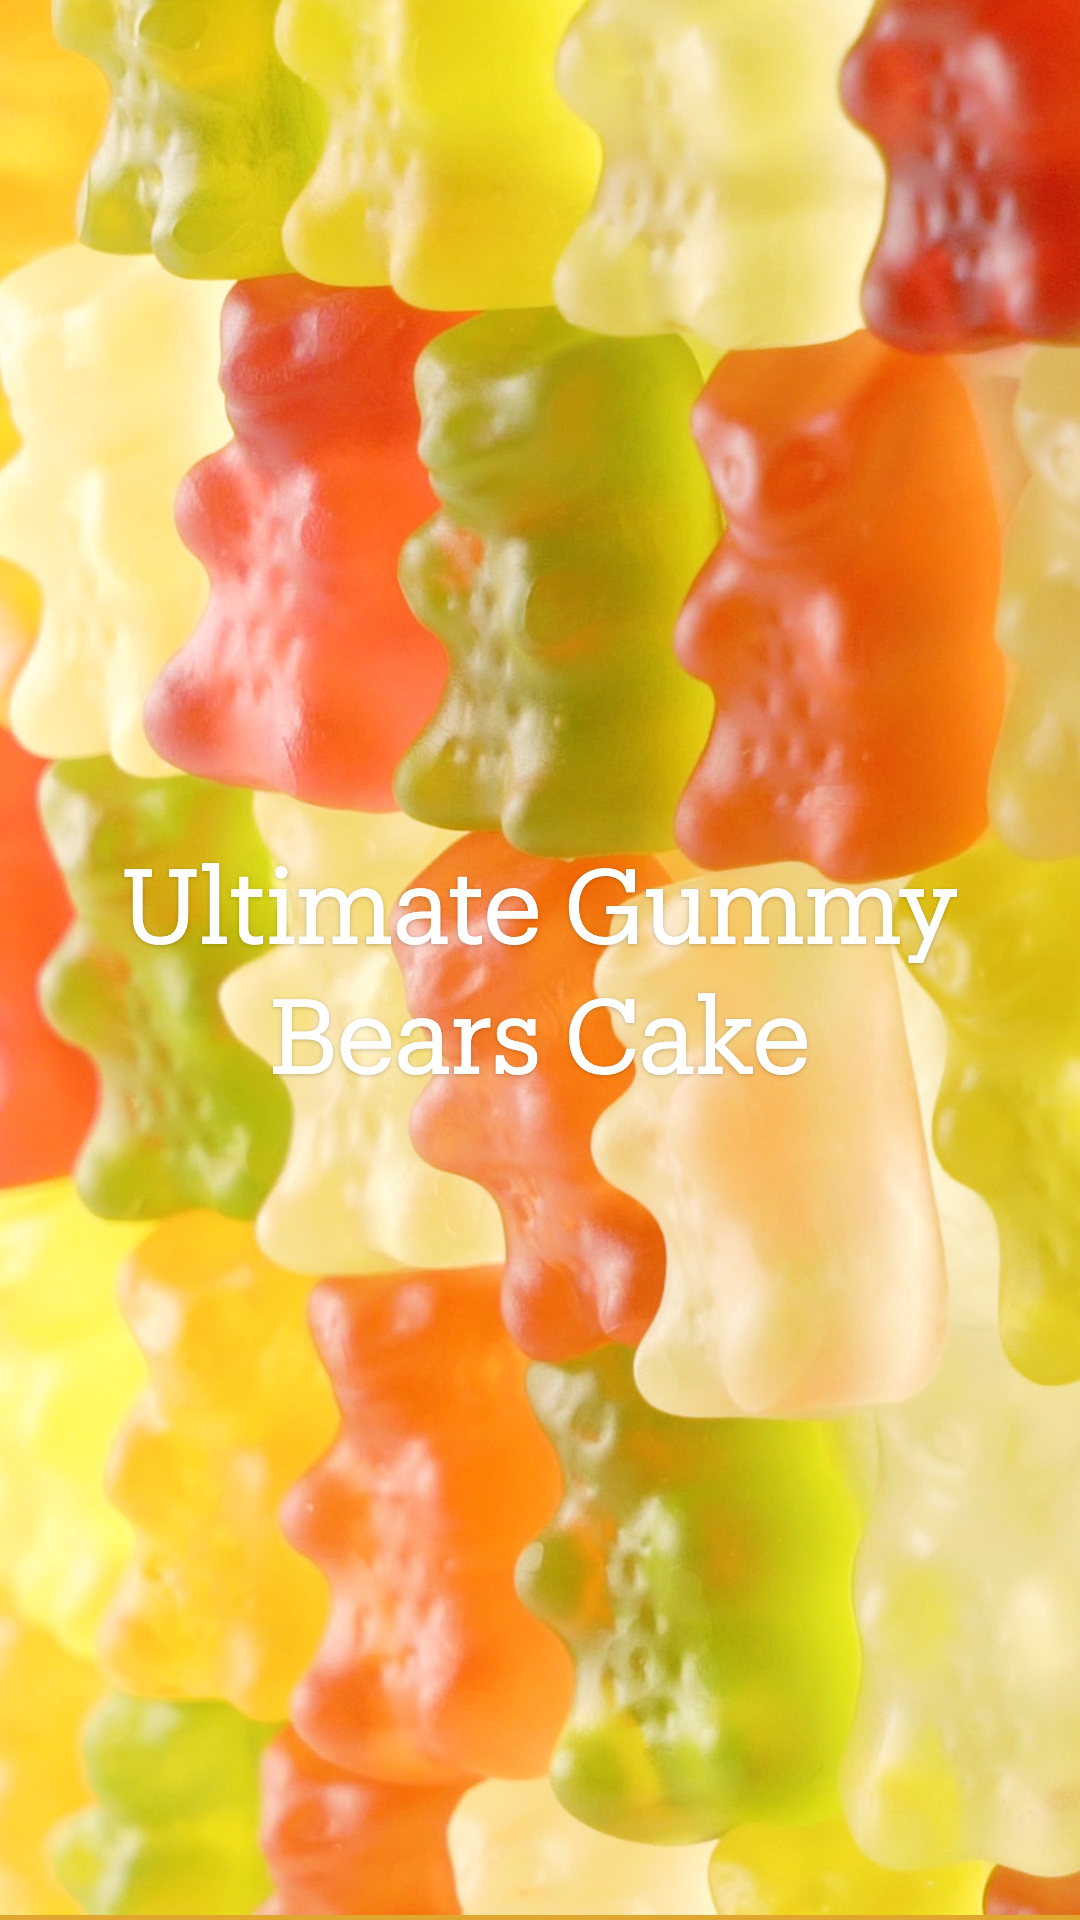 Ultimate Gummy Bears Cake